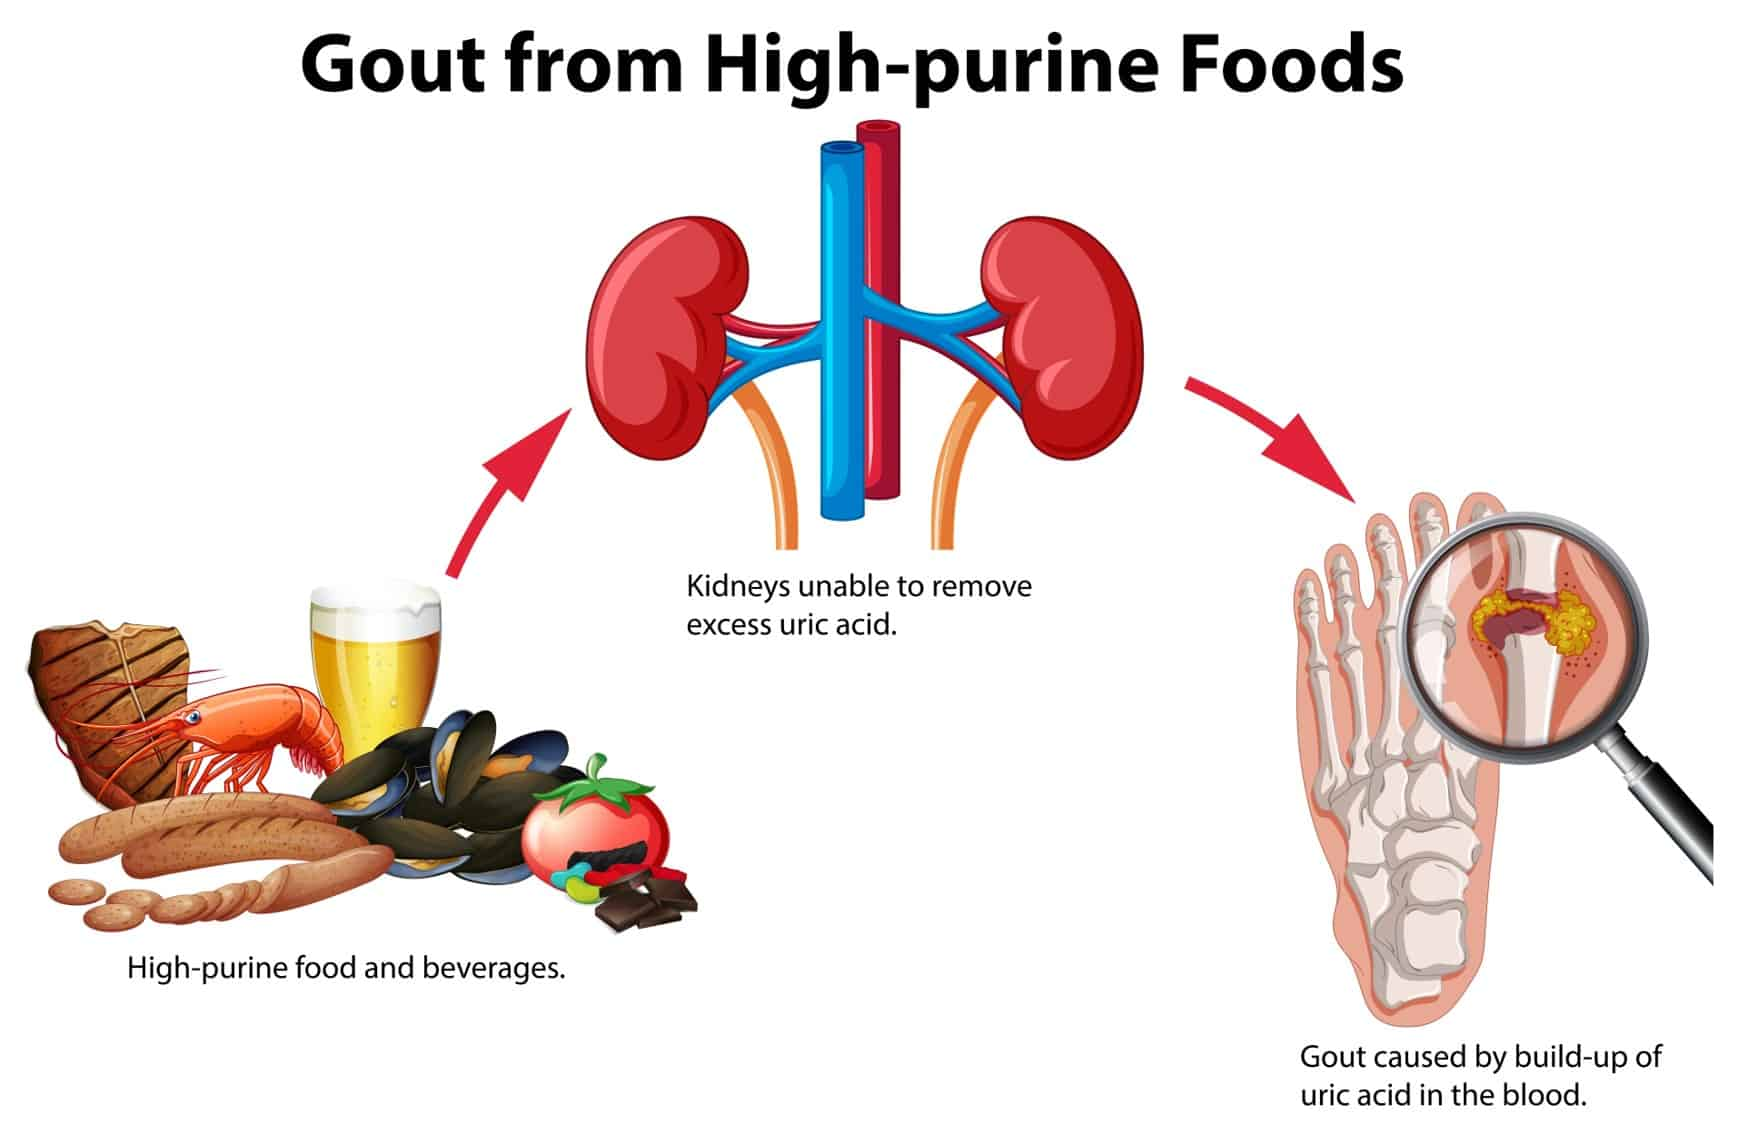 Foods that contribute to gout